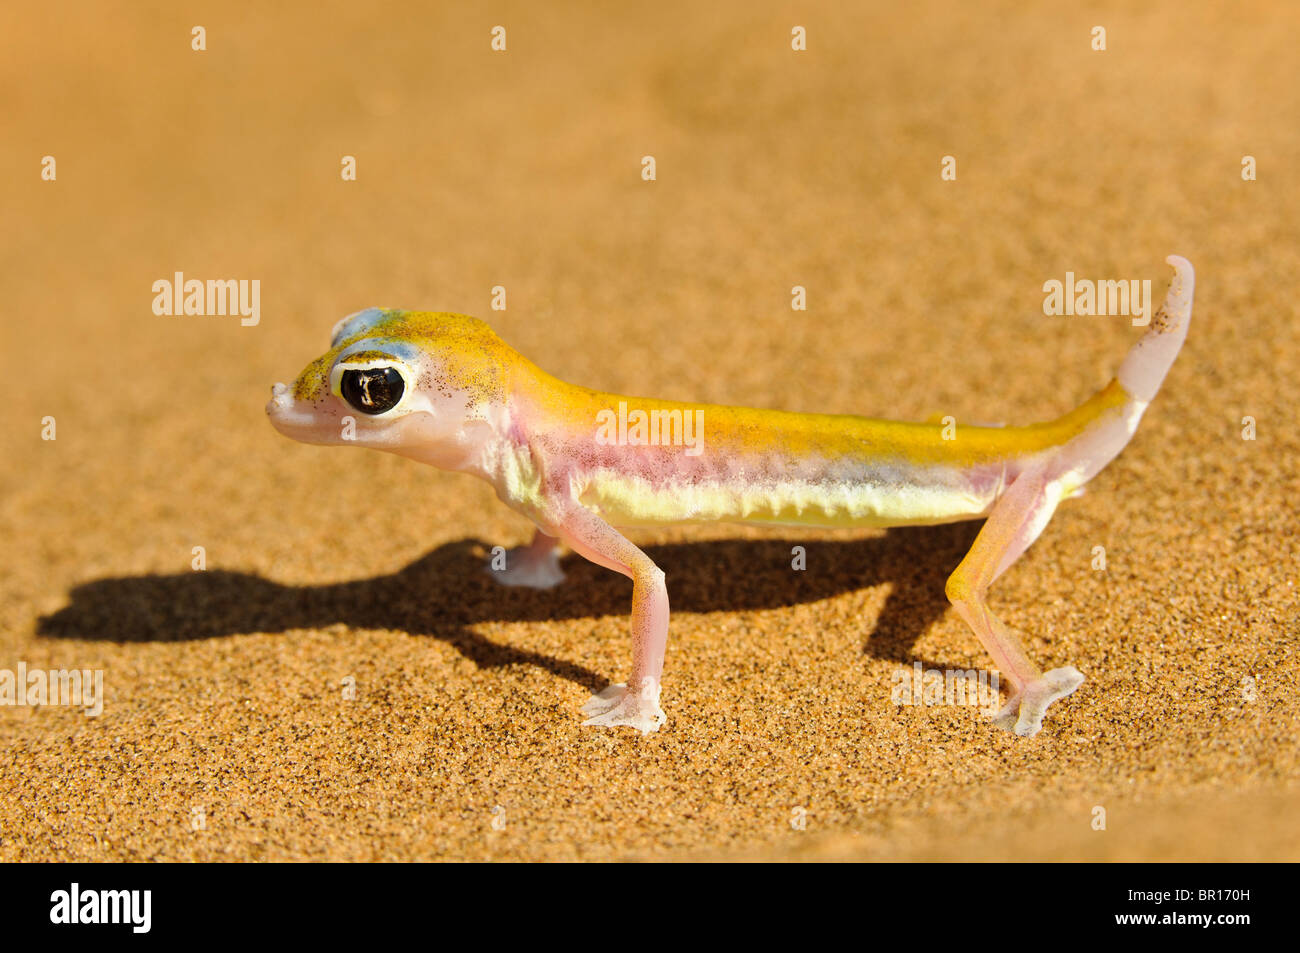 This is the nocturnal namib dune gecko. Also called palmato gecko. Stock Photo